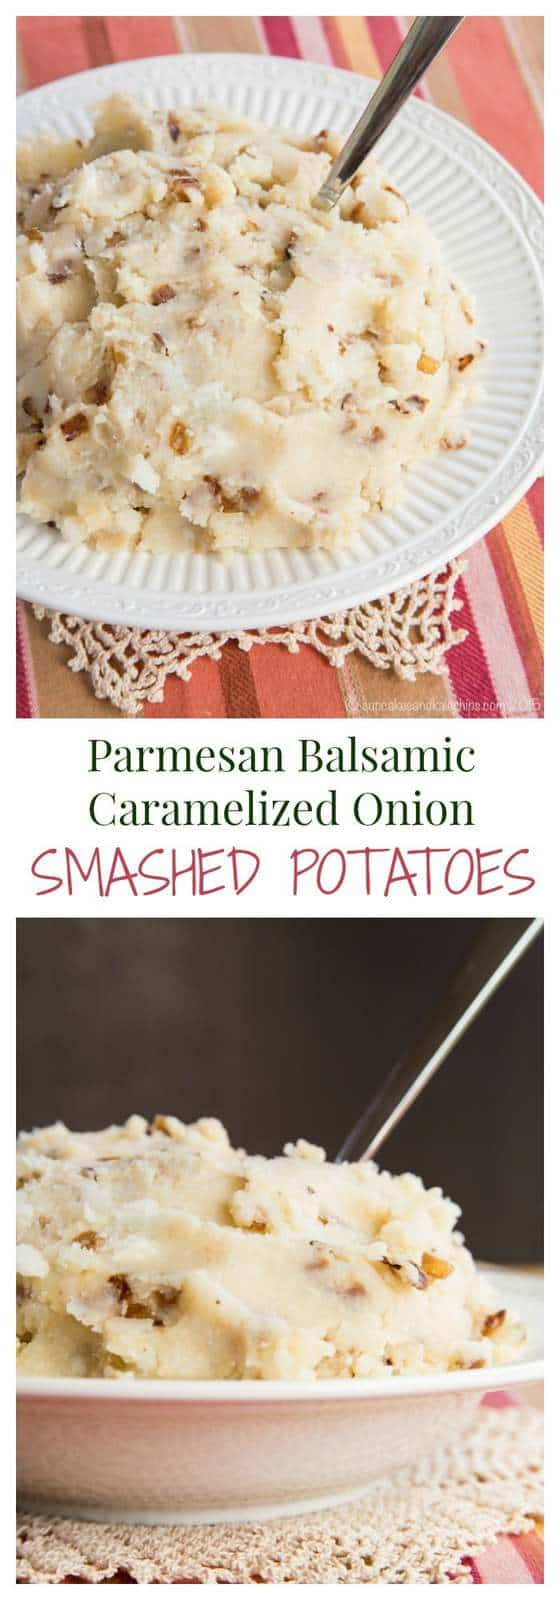 Parmesan Balsamic Caramelized Onion Smashed Potatoes - a tasty way to change up your traditional mashed potatoes recipe for your Sunday dinner or holiday meal. | cupcakesandkalechips.com